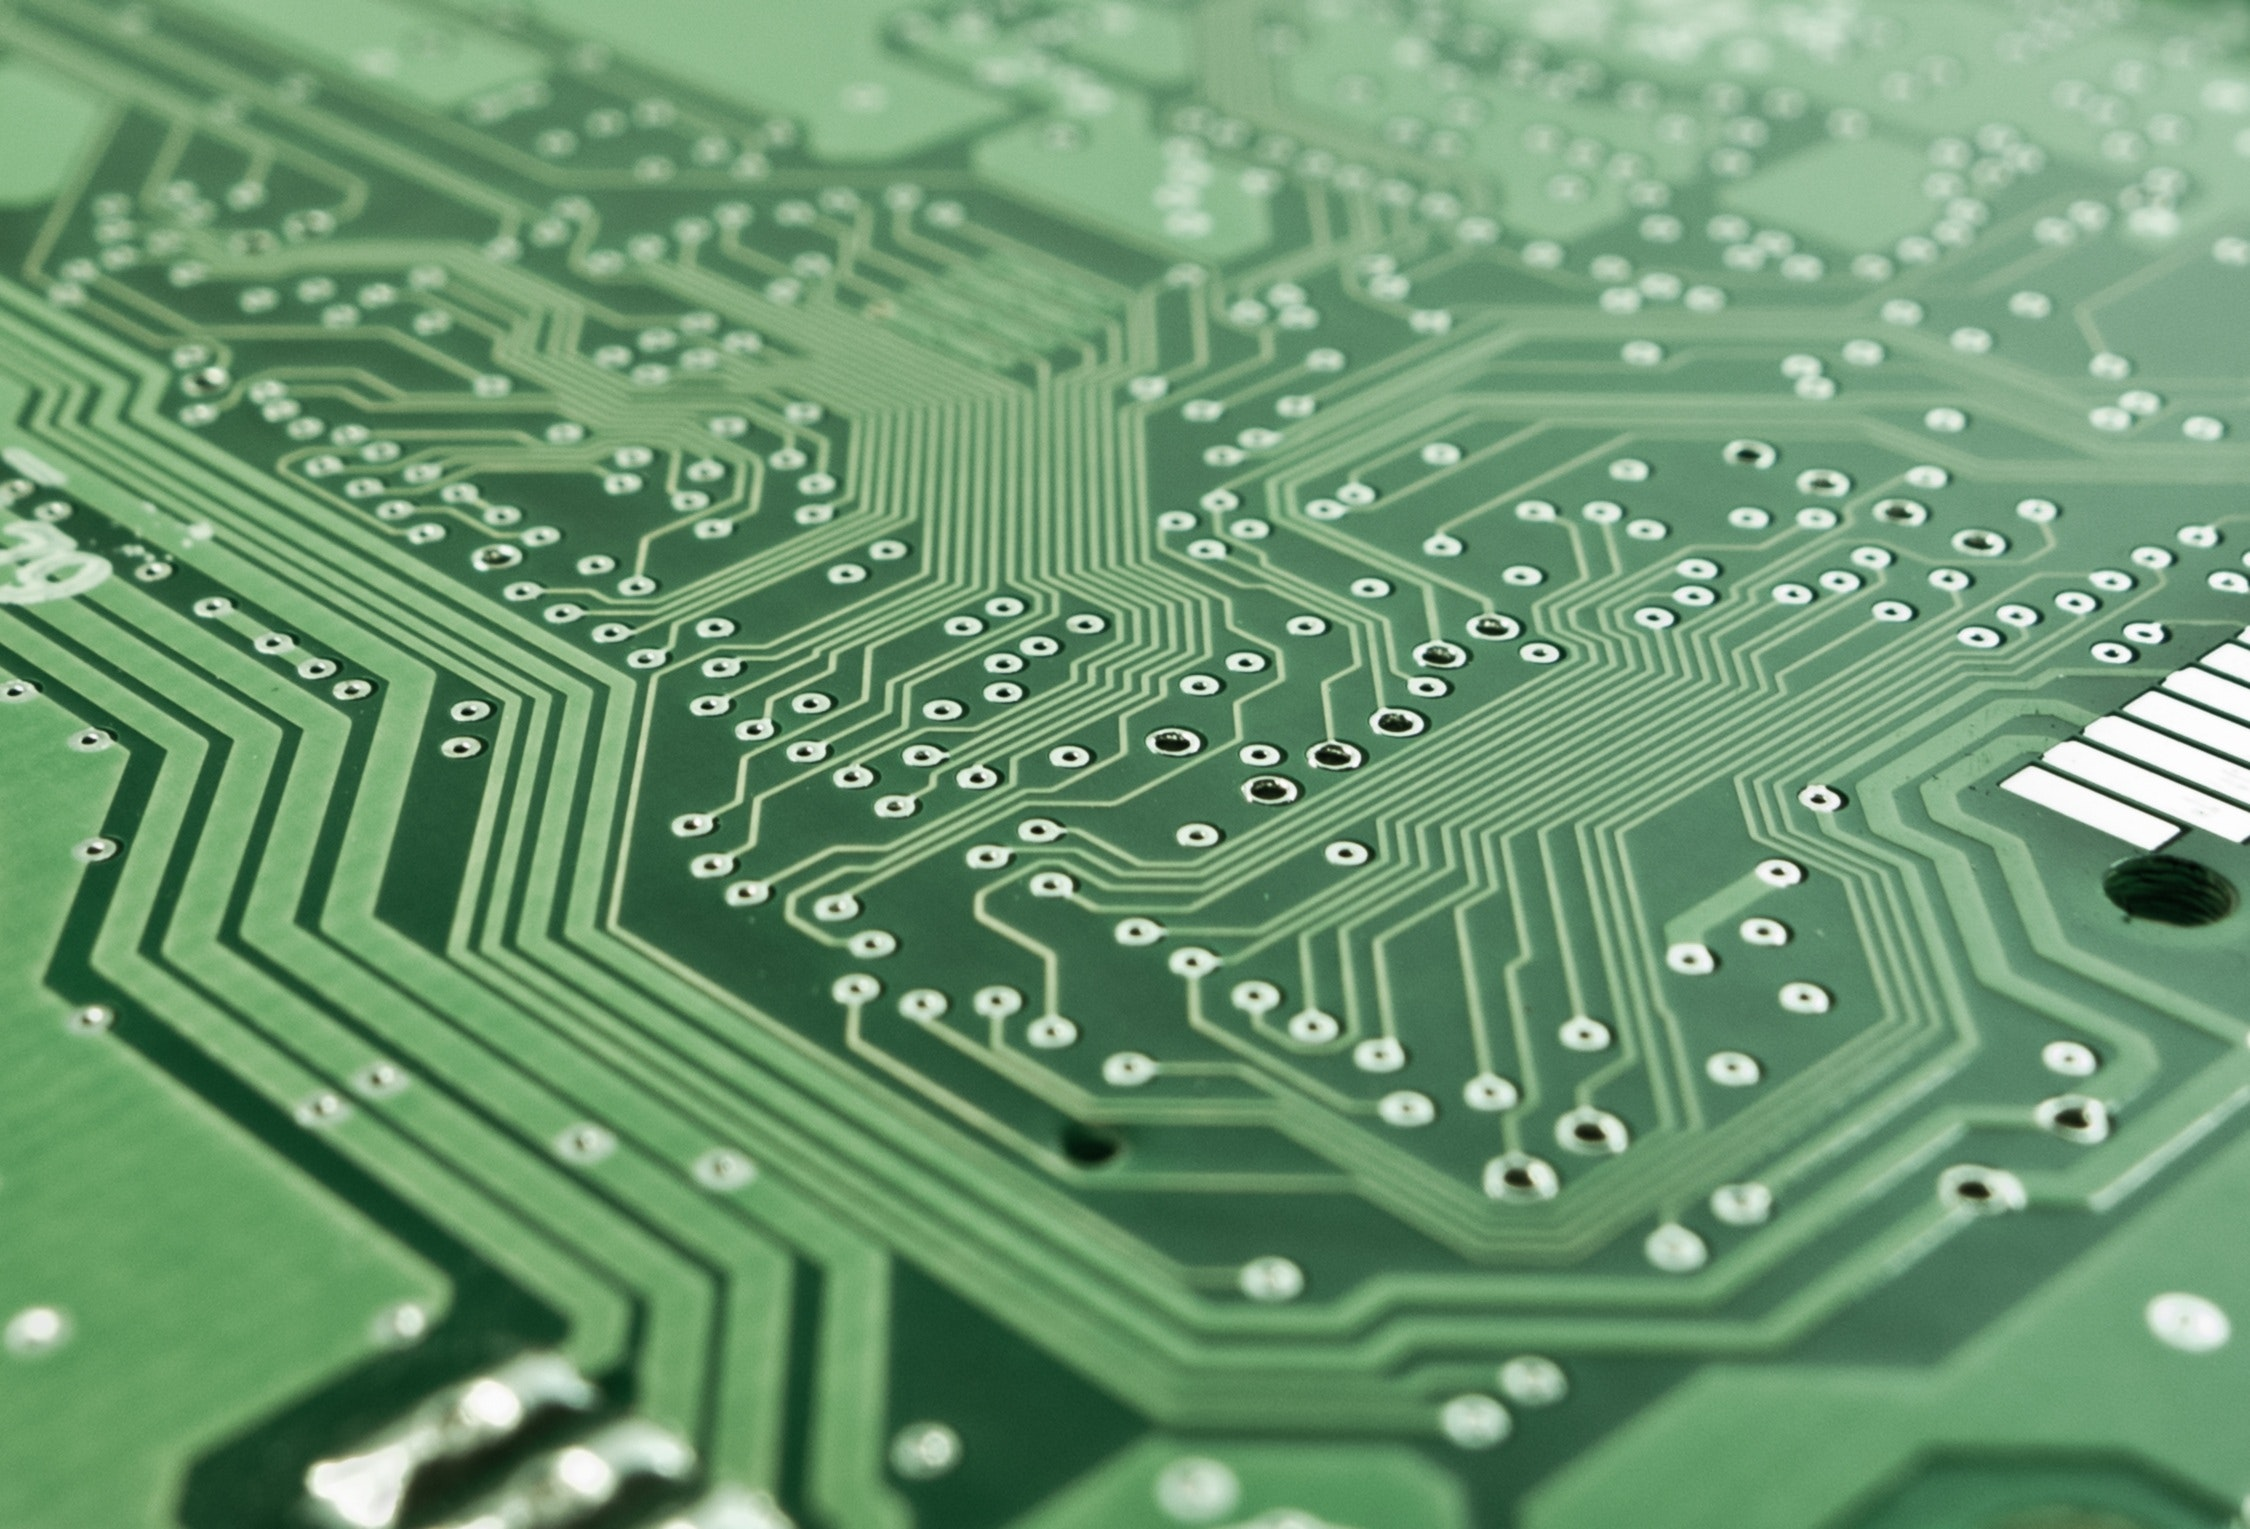 Close-up view of a computer circuit board